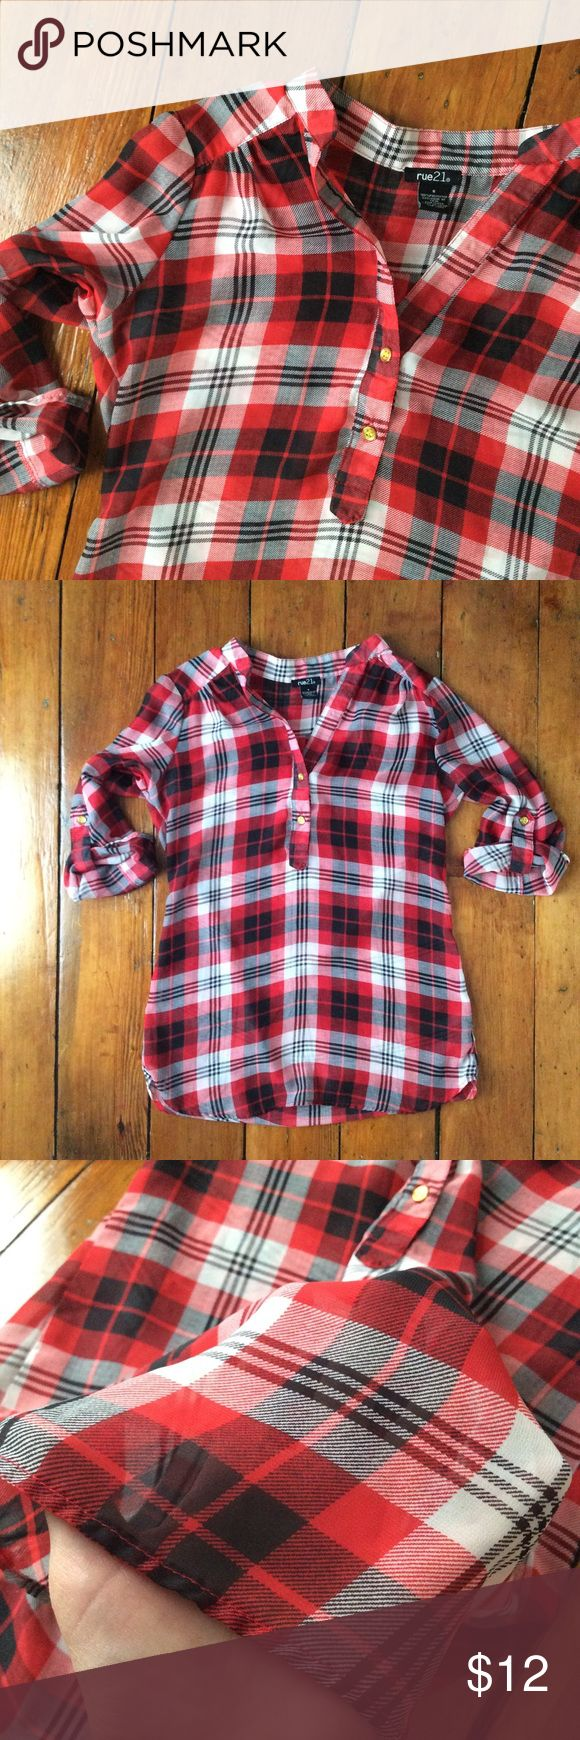 """[Rue 21] Red & Black Plaid Tunic Top - Size S Lightweight sheer plaid tunic from Rue 21. Red, black, and white colors with gold button detail. Size small. Measures 19"""" across chest, underarm to underarm. 28.5"""" in length, from top of neck to bottom hem. The fabric is semi-sheer, so it is meant to be worn with a cami or tank underneath. Would look super cute with a pair of black leggings this fall! Rue 21 Tops"""